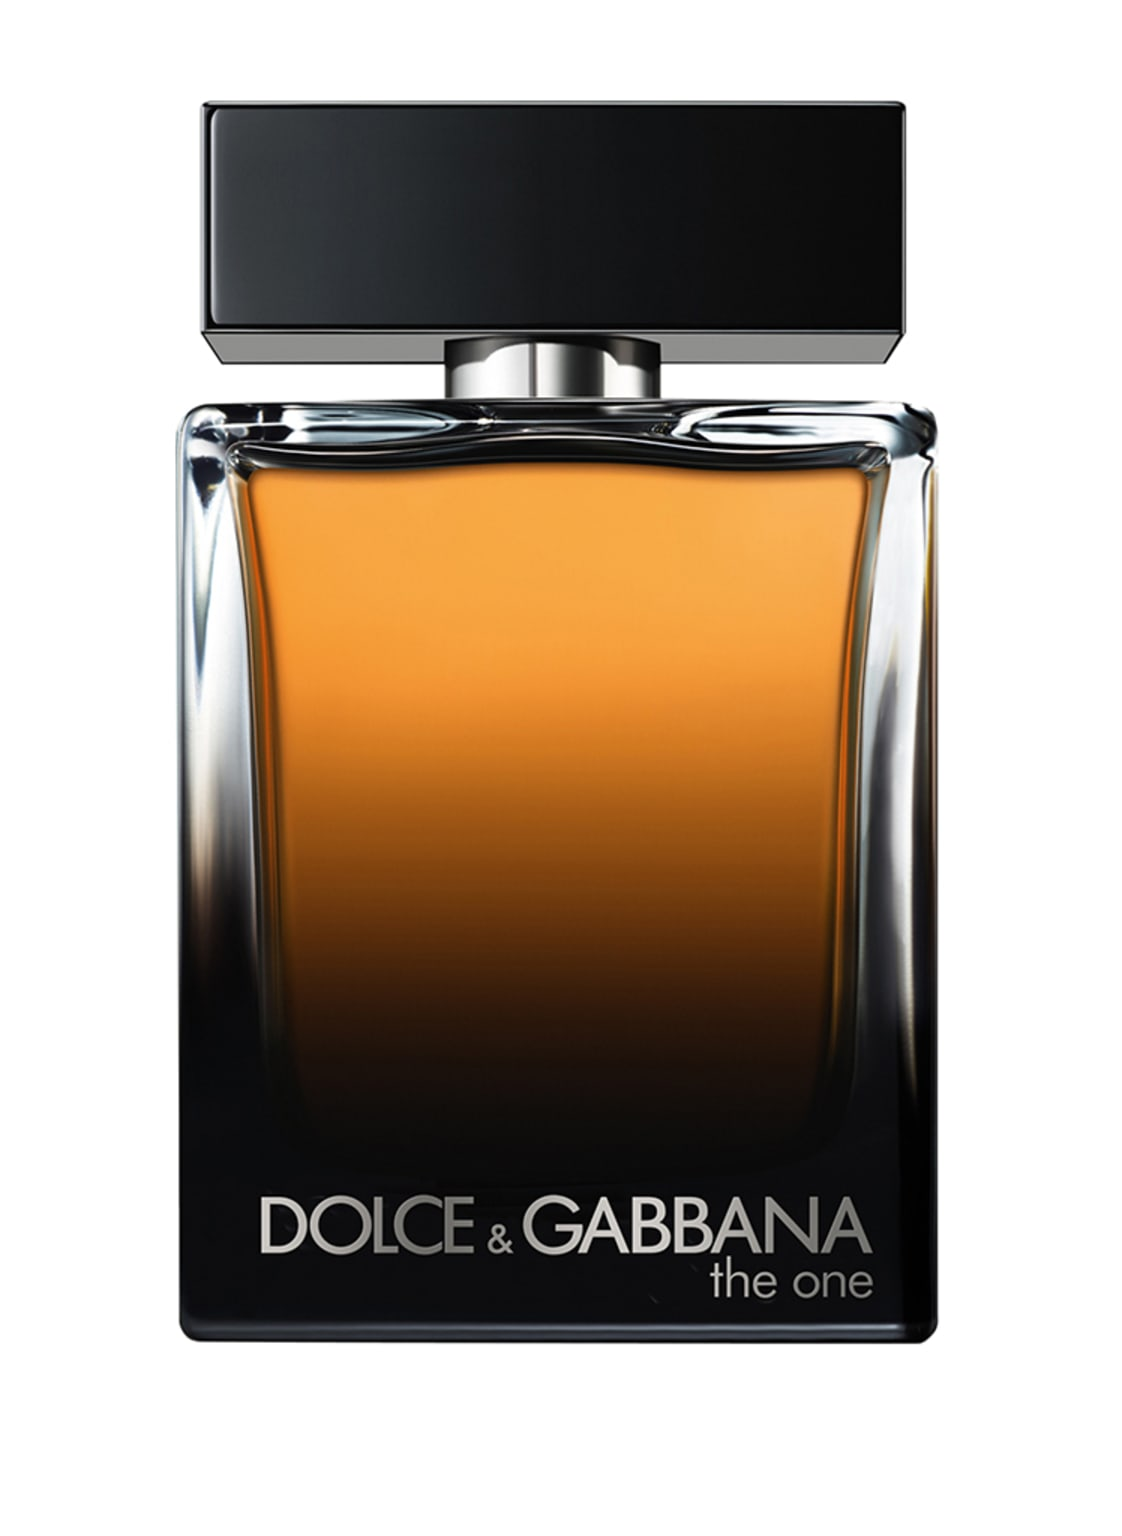 Dolce & Gabbana Fragrances The One For Men Eau de Parfum 50 ml von DOLCE & GABBANA FRAGRANCES